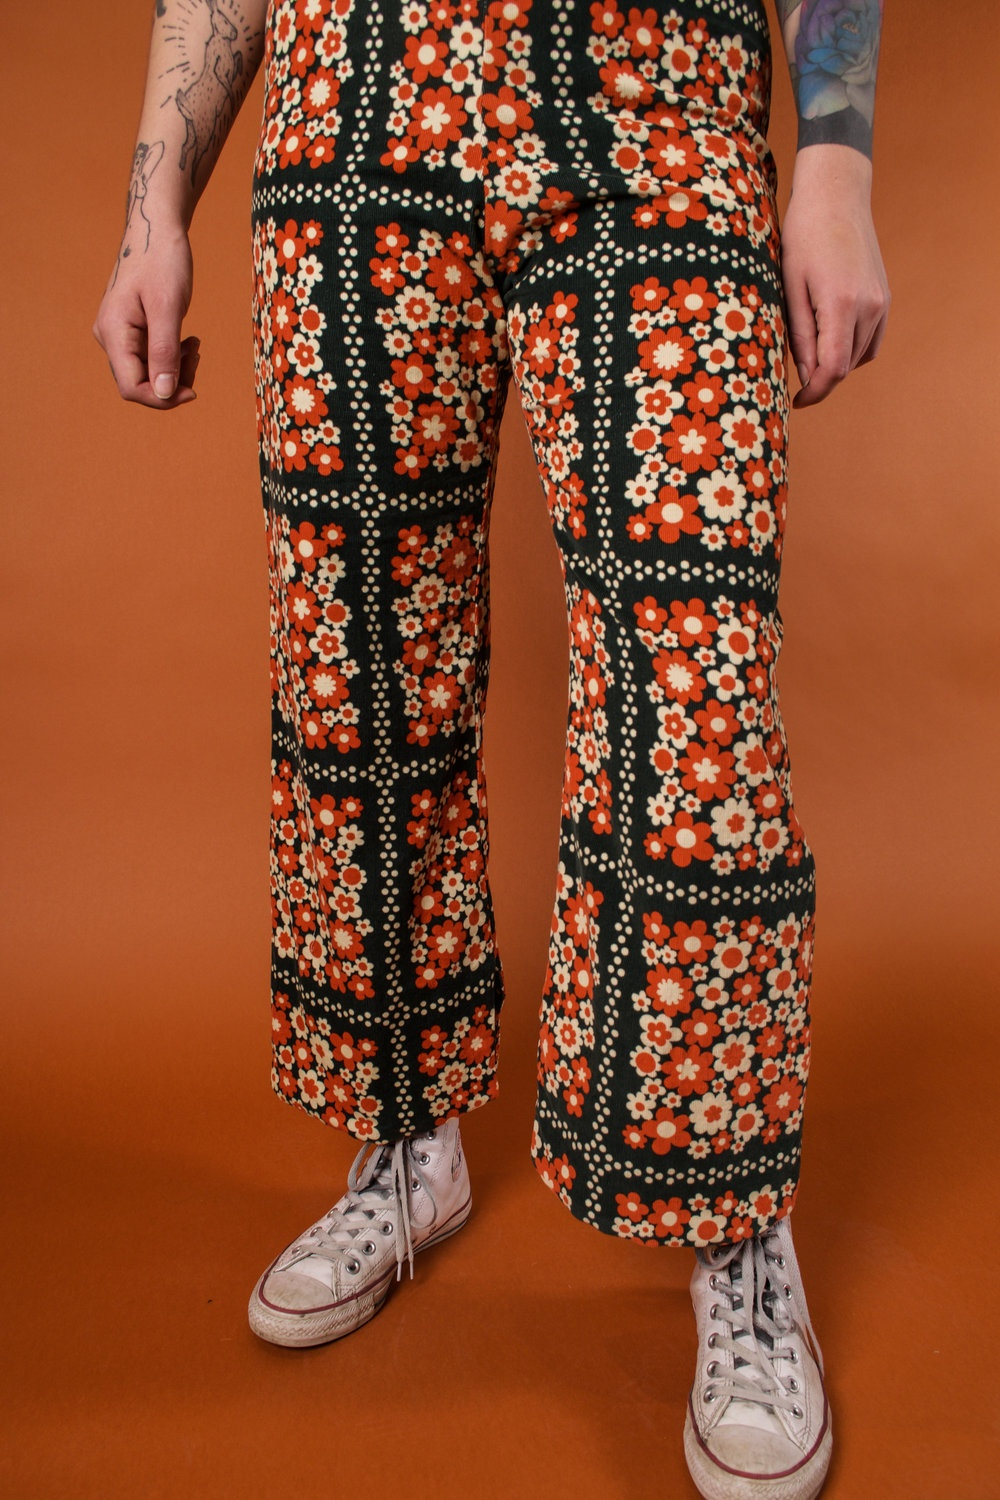 the pants flower power